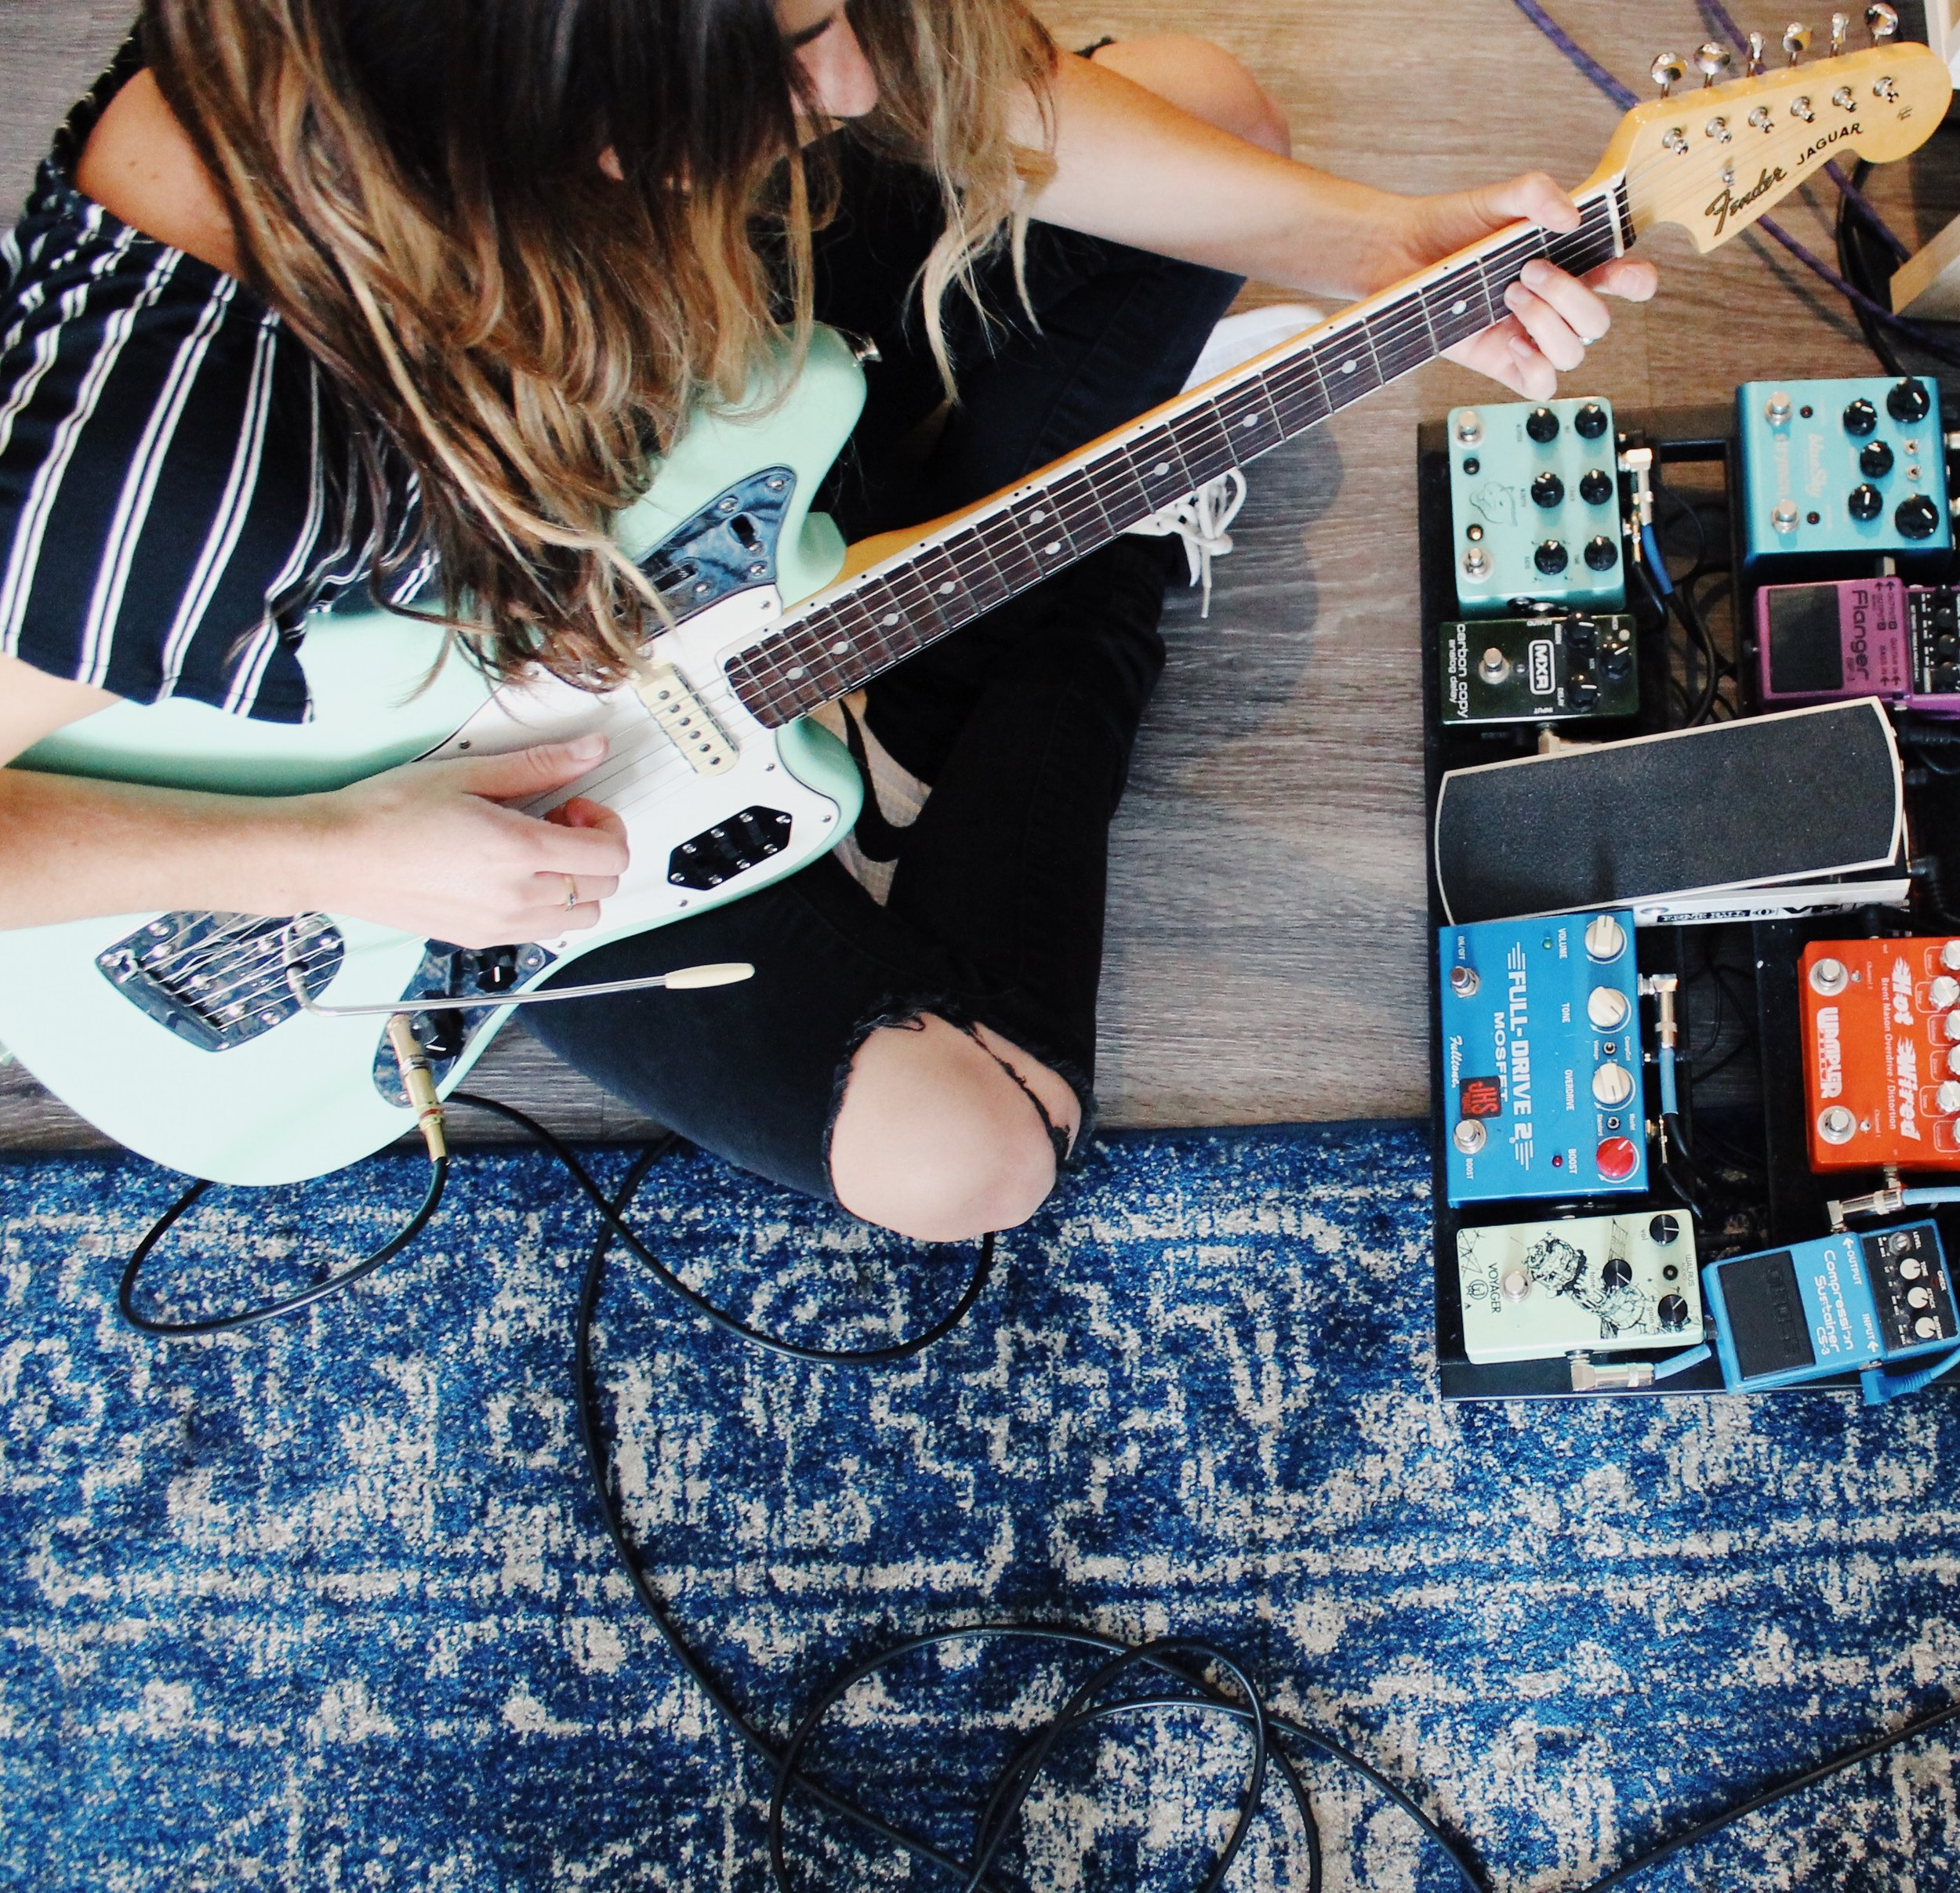 Guitar gear can be way overwhelming - Let me walk you through it all here!